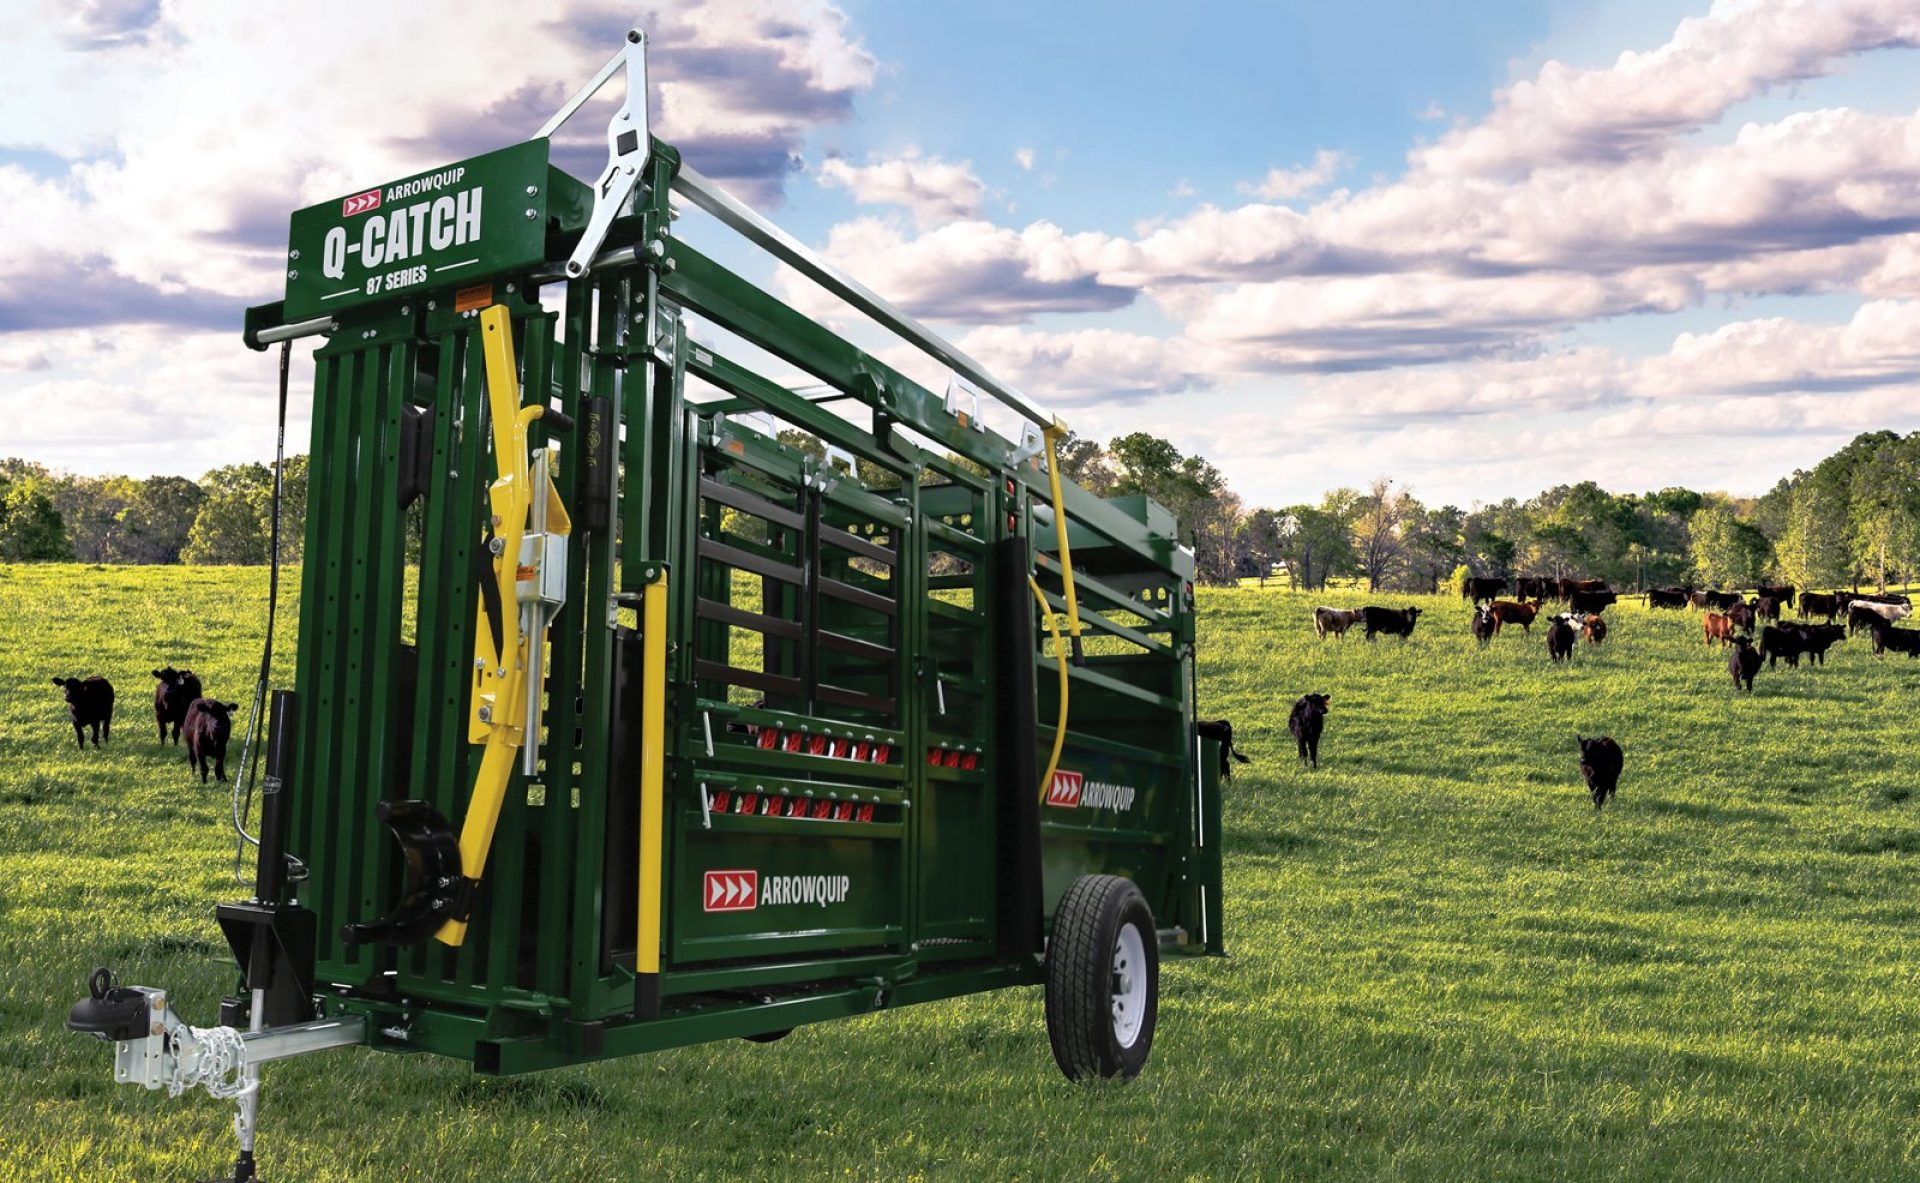 Q-Catch 87 Series portable cattle chute and alley sitting in field with cattle